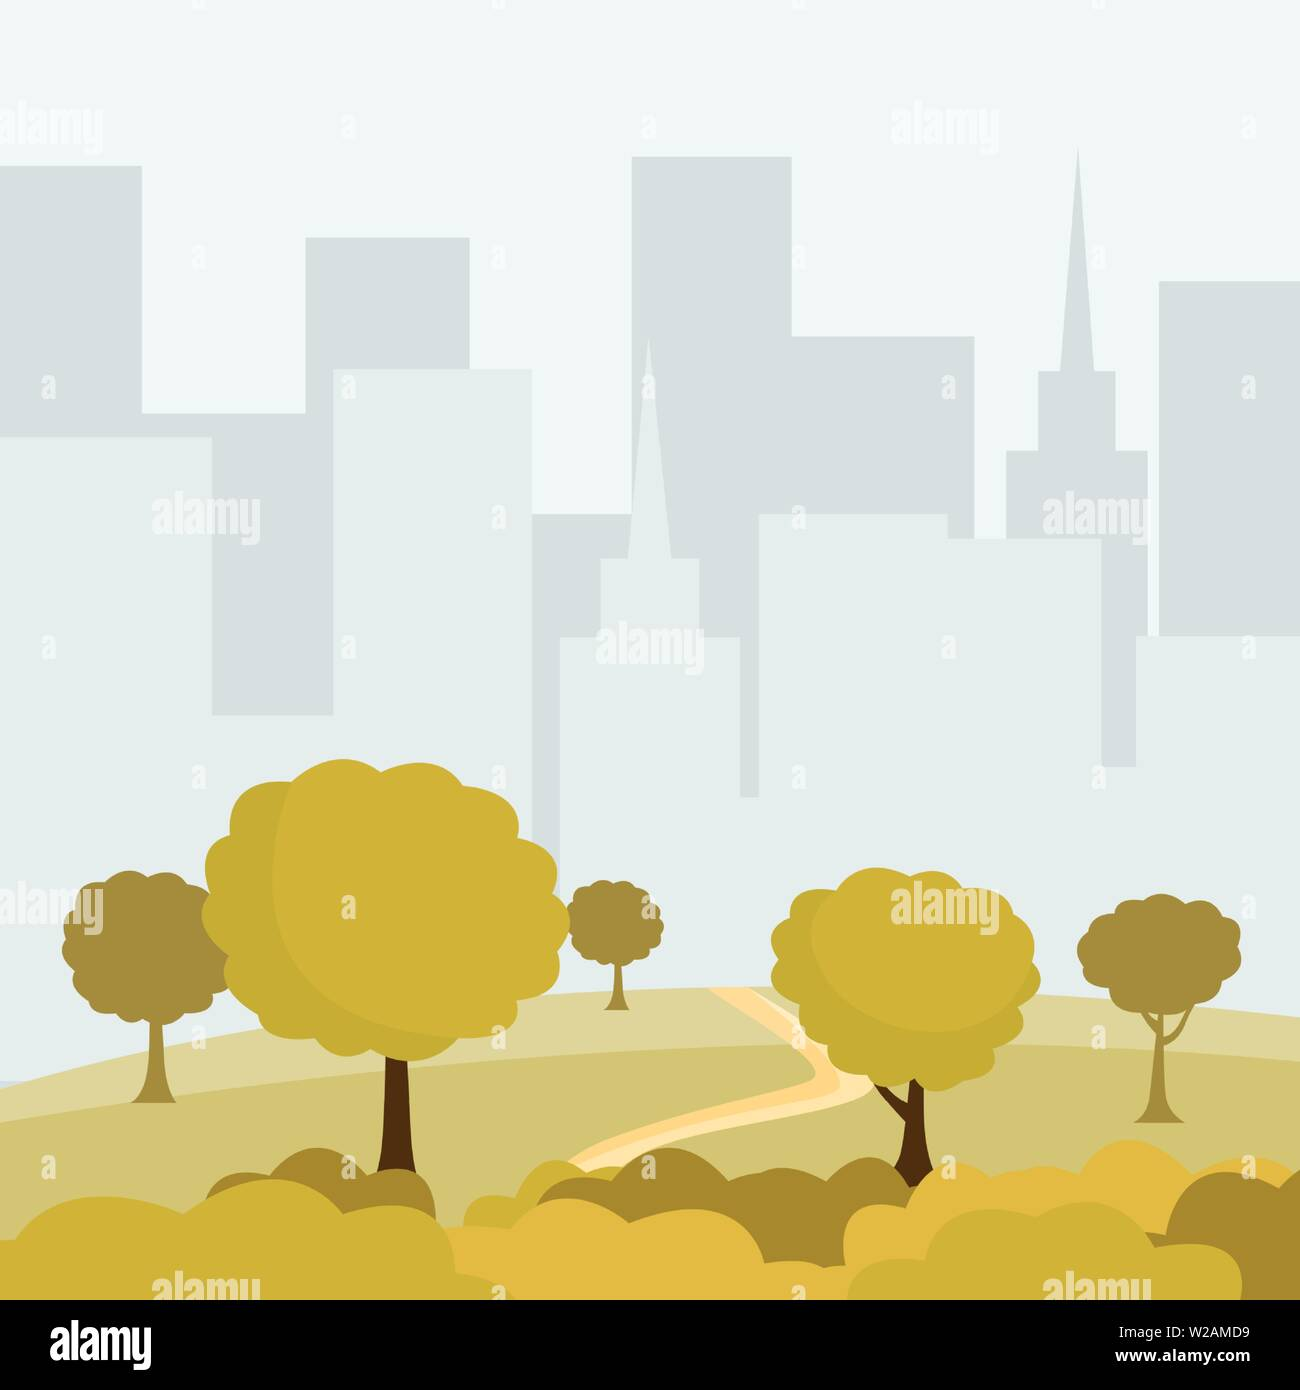 Modern city park cartoon vector illustration. Green trees and bushes walkway, buildings cityspace, outdoor leisure on nature, eco public area. Sunset in recreational urban park color drawing - Stock Vector